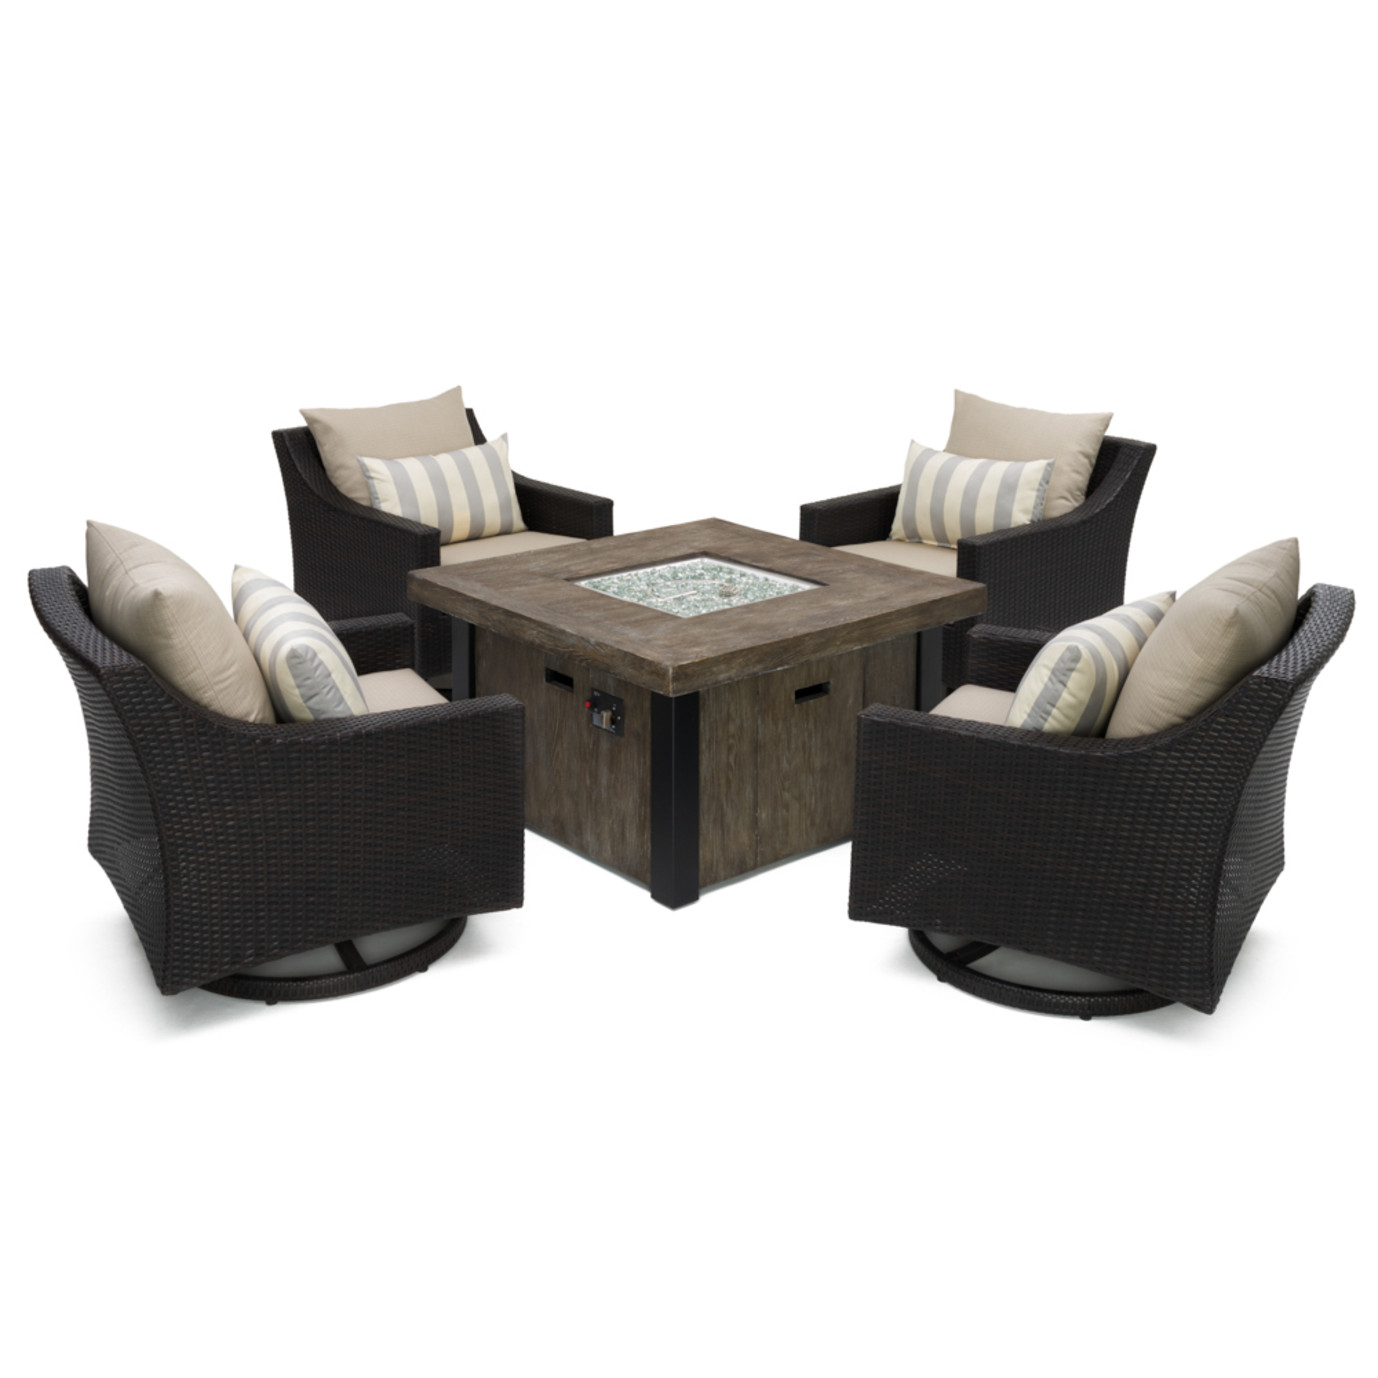 Deco™ 5 Piece Motion Fire Chat Set in Slate Gray